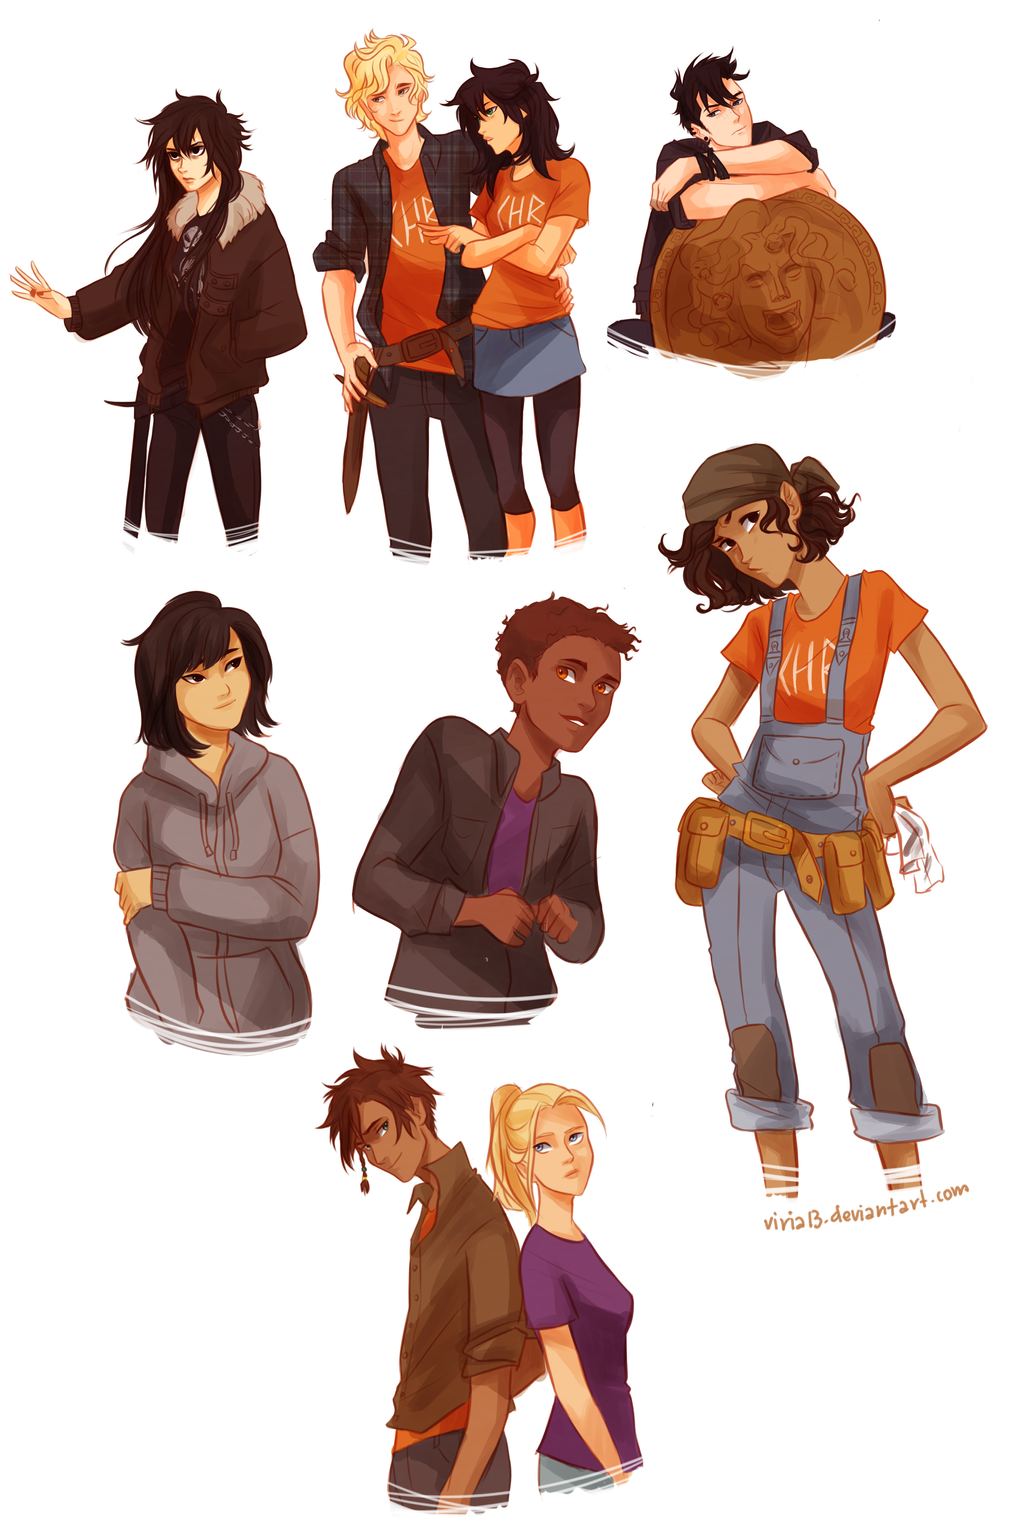 Heroes of Olympus genderbend by viria13 on DeviantArt